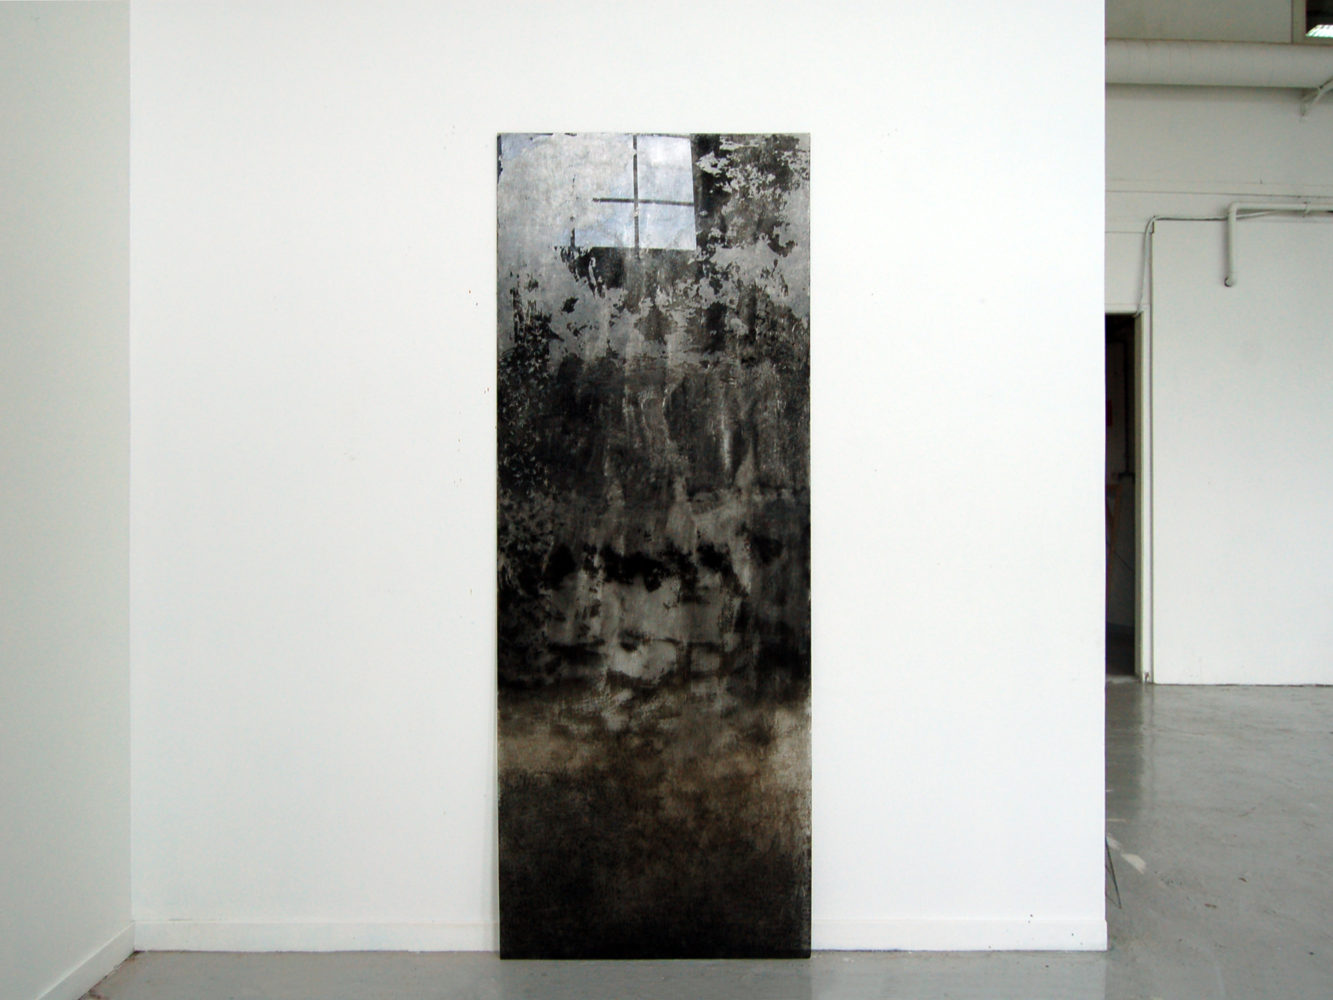 In No One Makes it Out